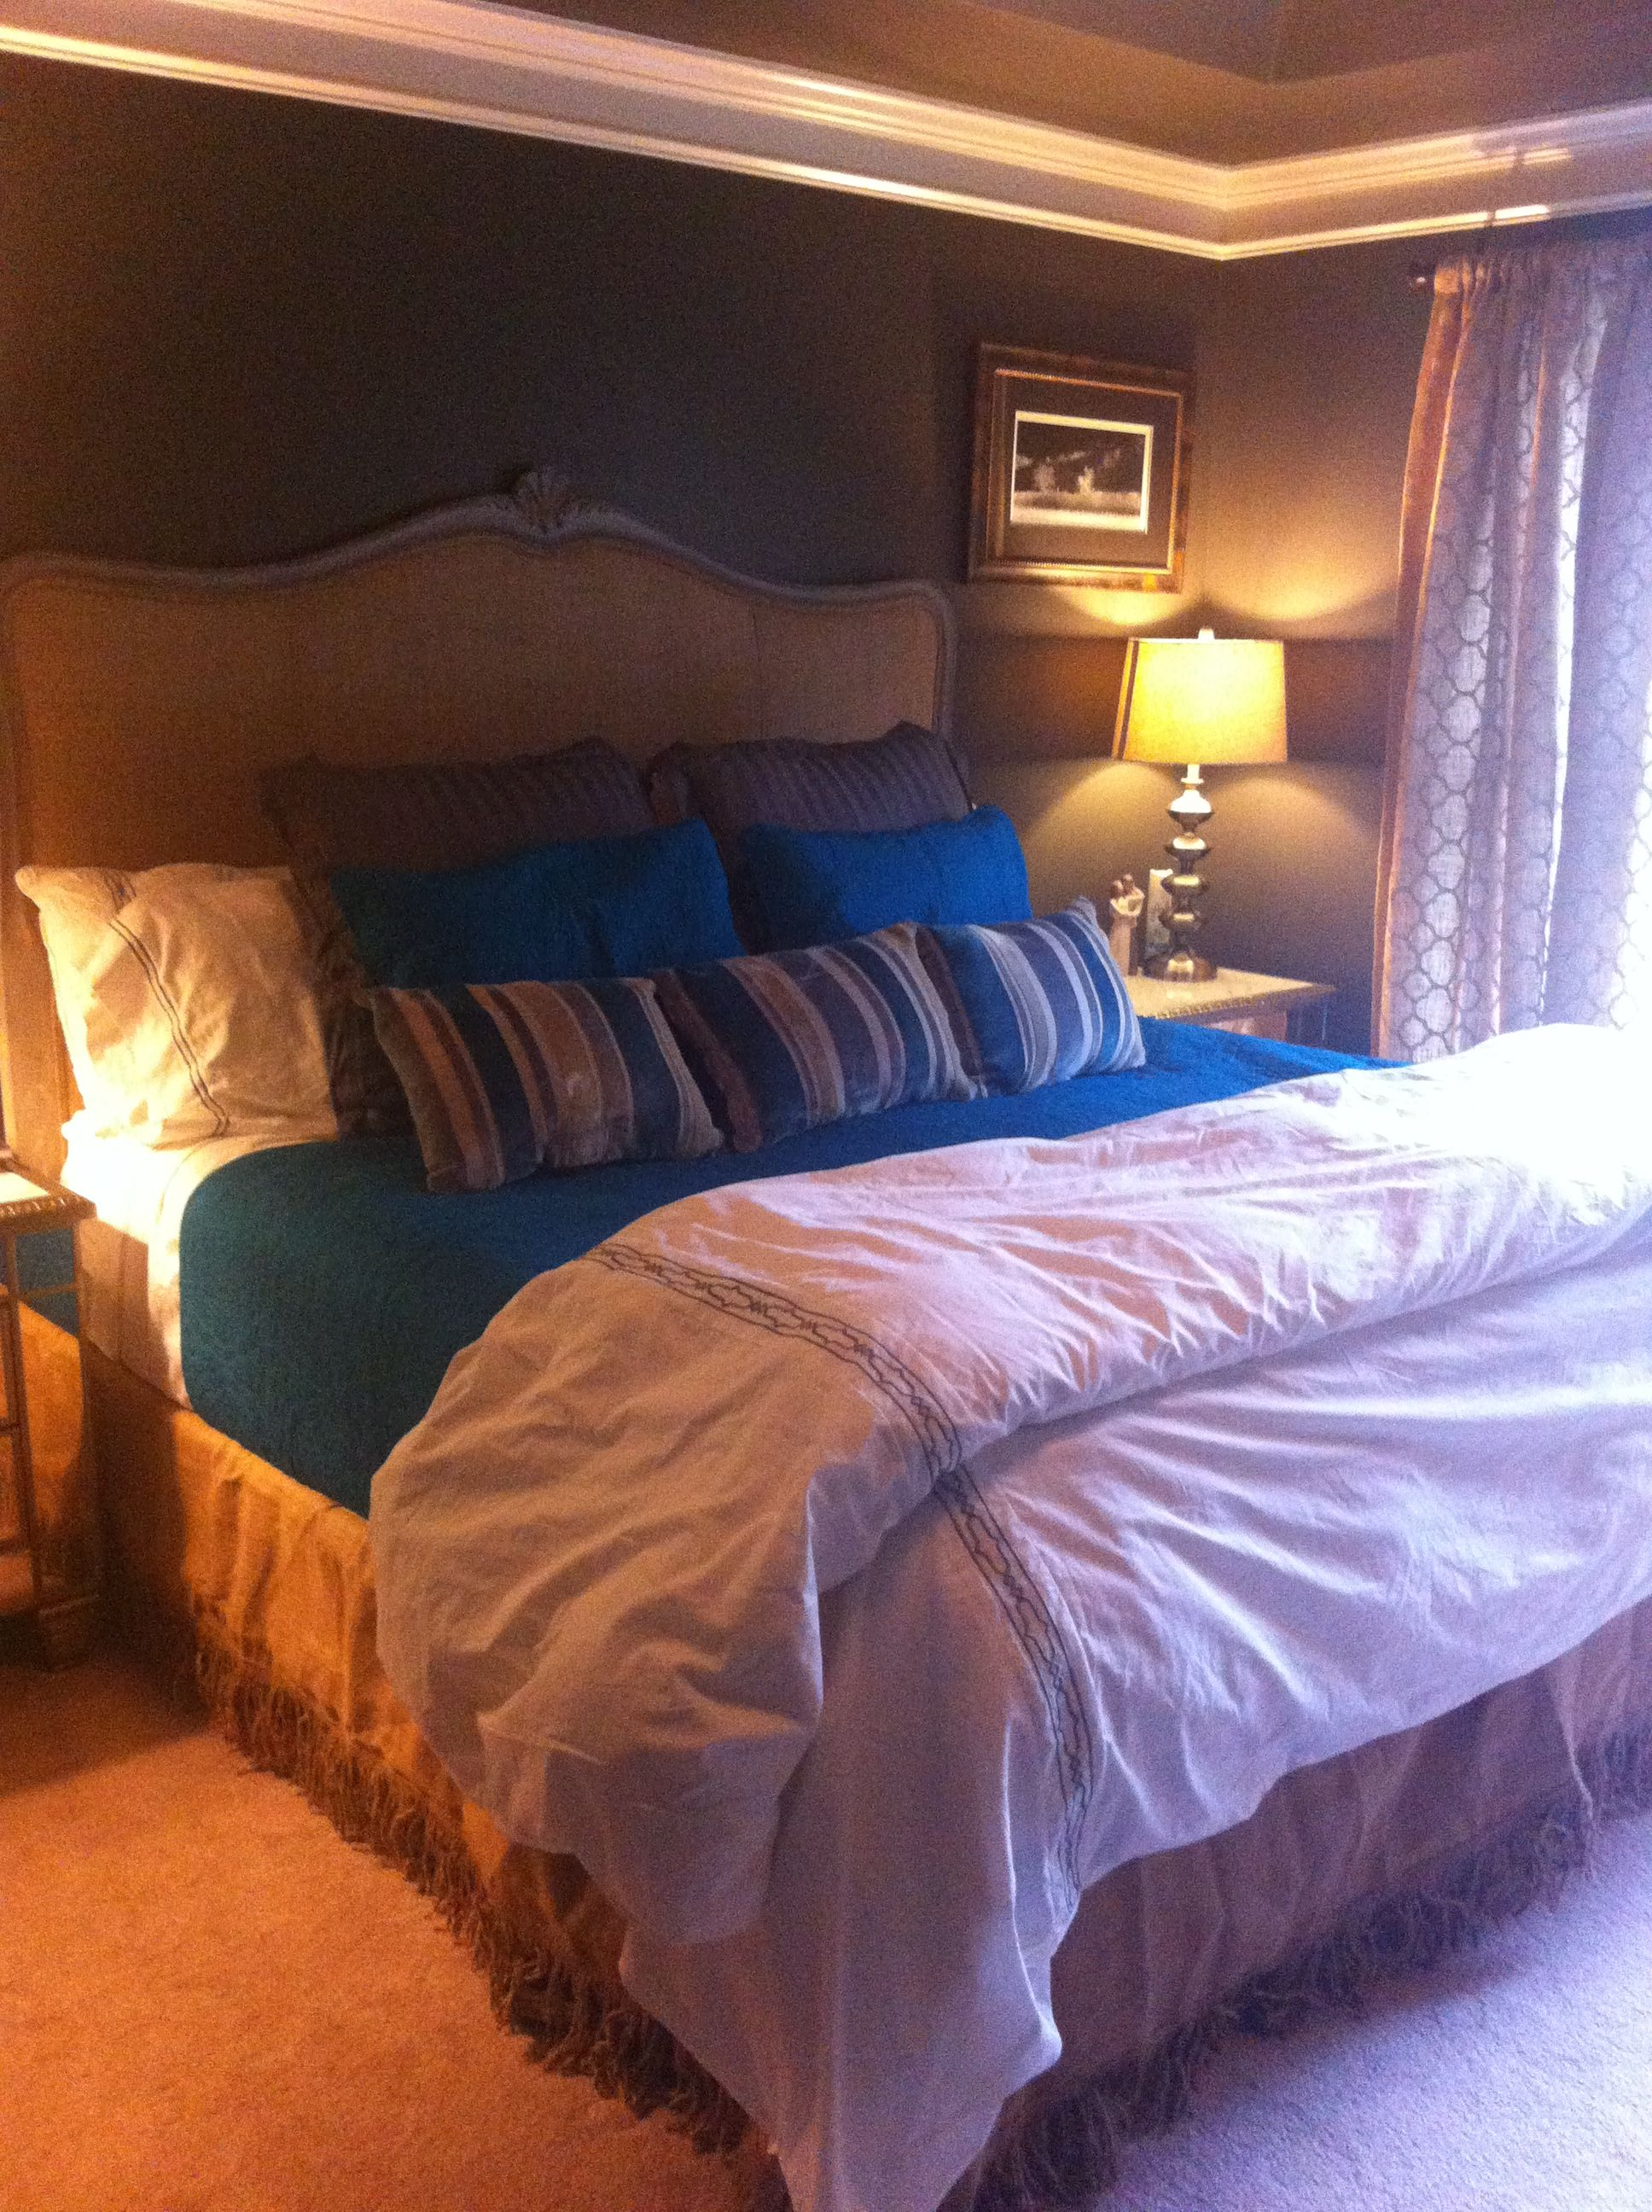 Sherwin Williams 7048, SW 7048, Urbane Bronze, on the walls and ceiling in master bedroom ...